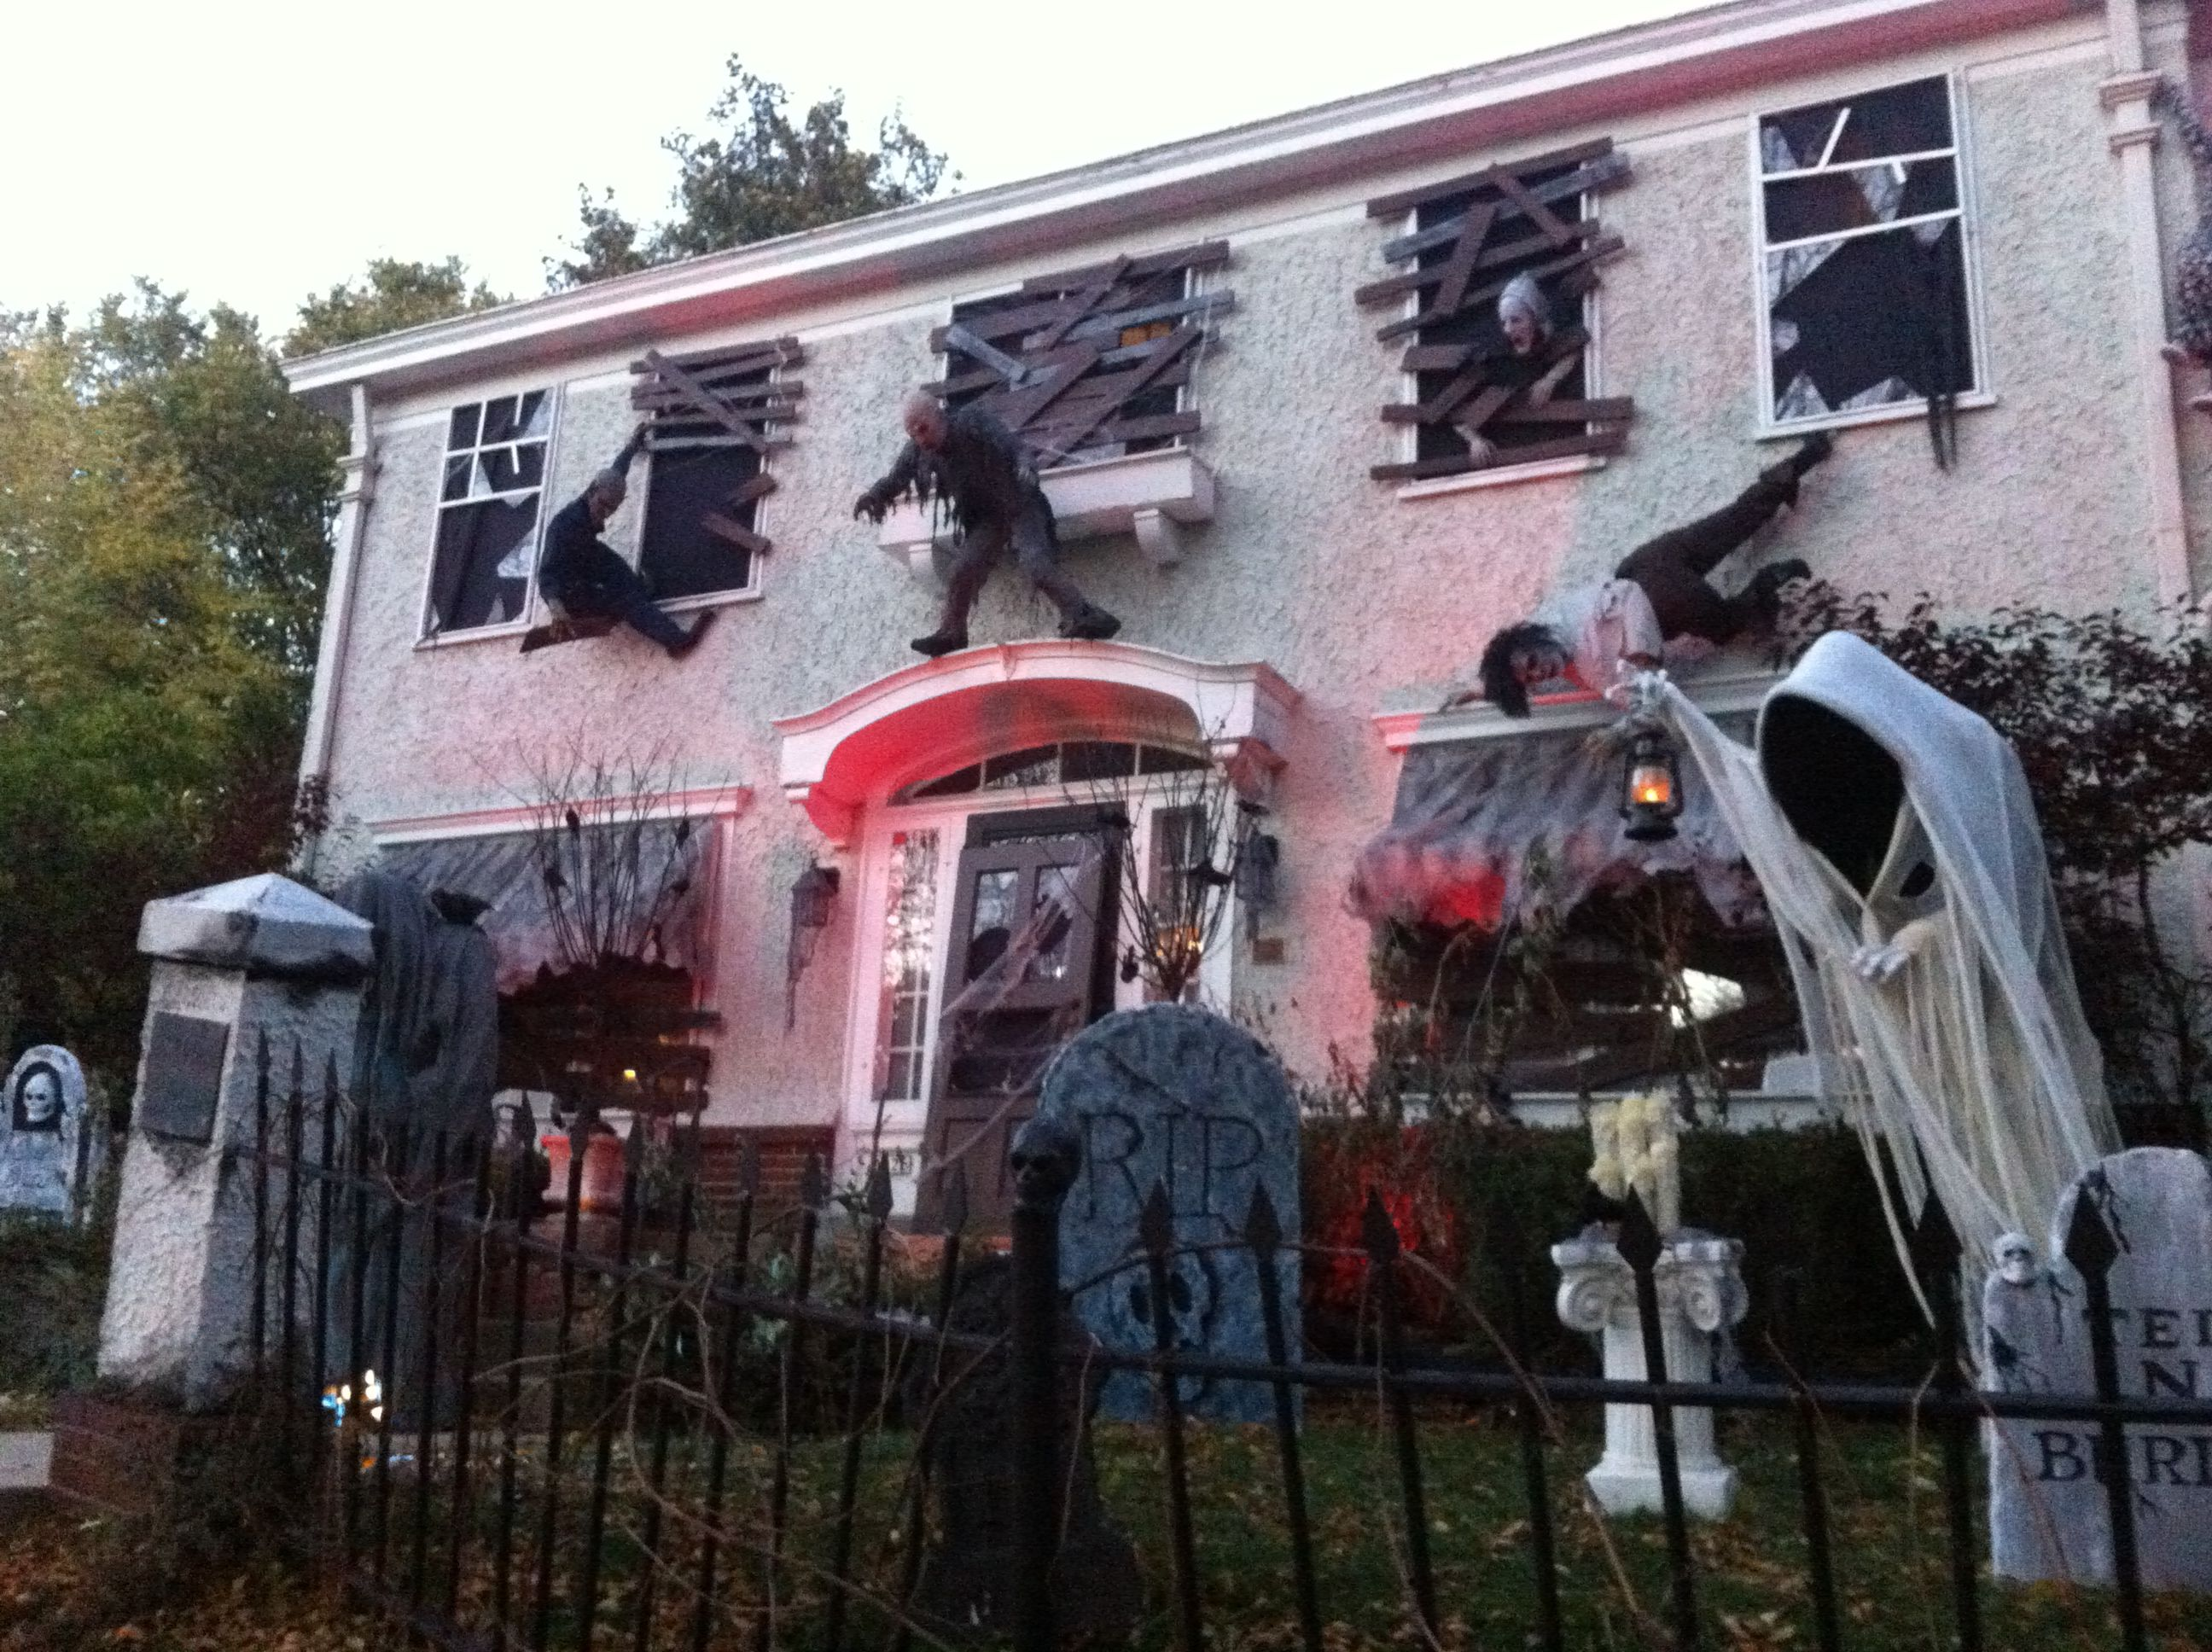 Halloween Haunted House Decorations.Halloween House Decorating Ideas Cheaper Than Retail Price Buy Clothing Accessories And Lifestyle Products For Women Men